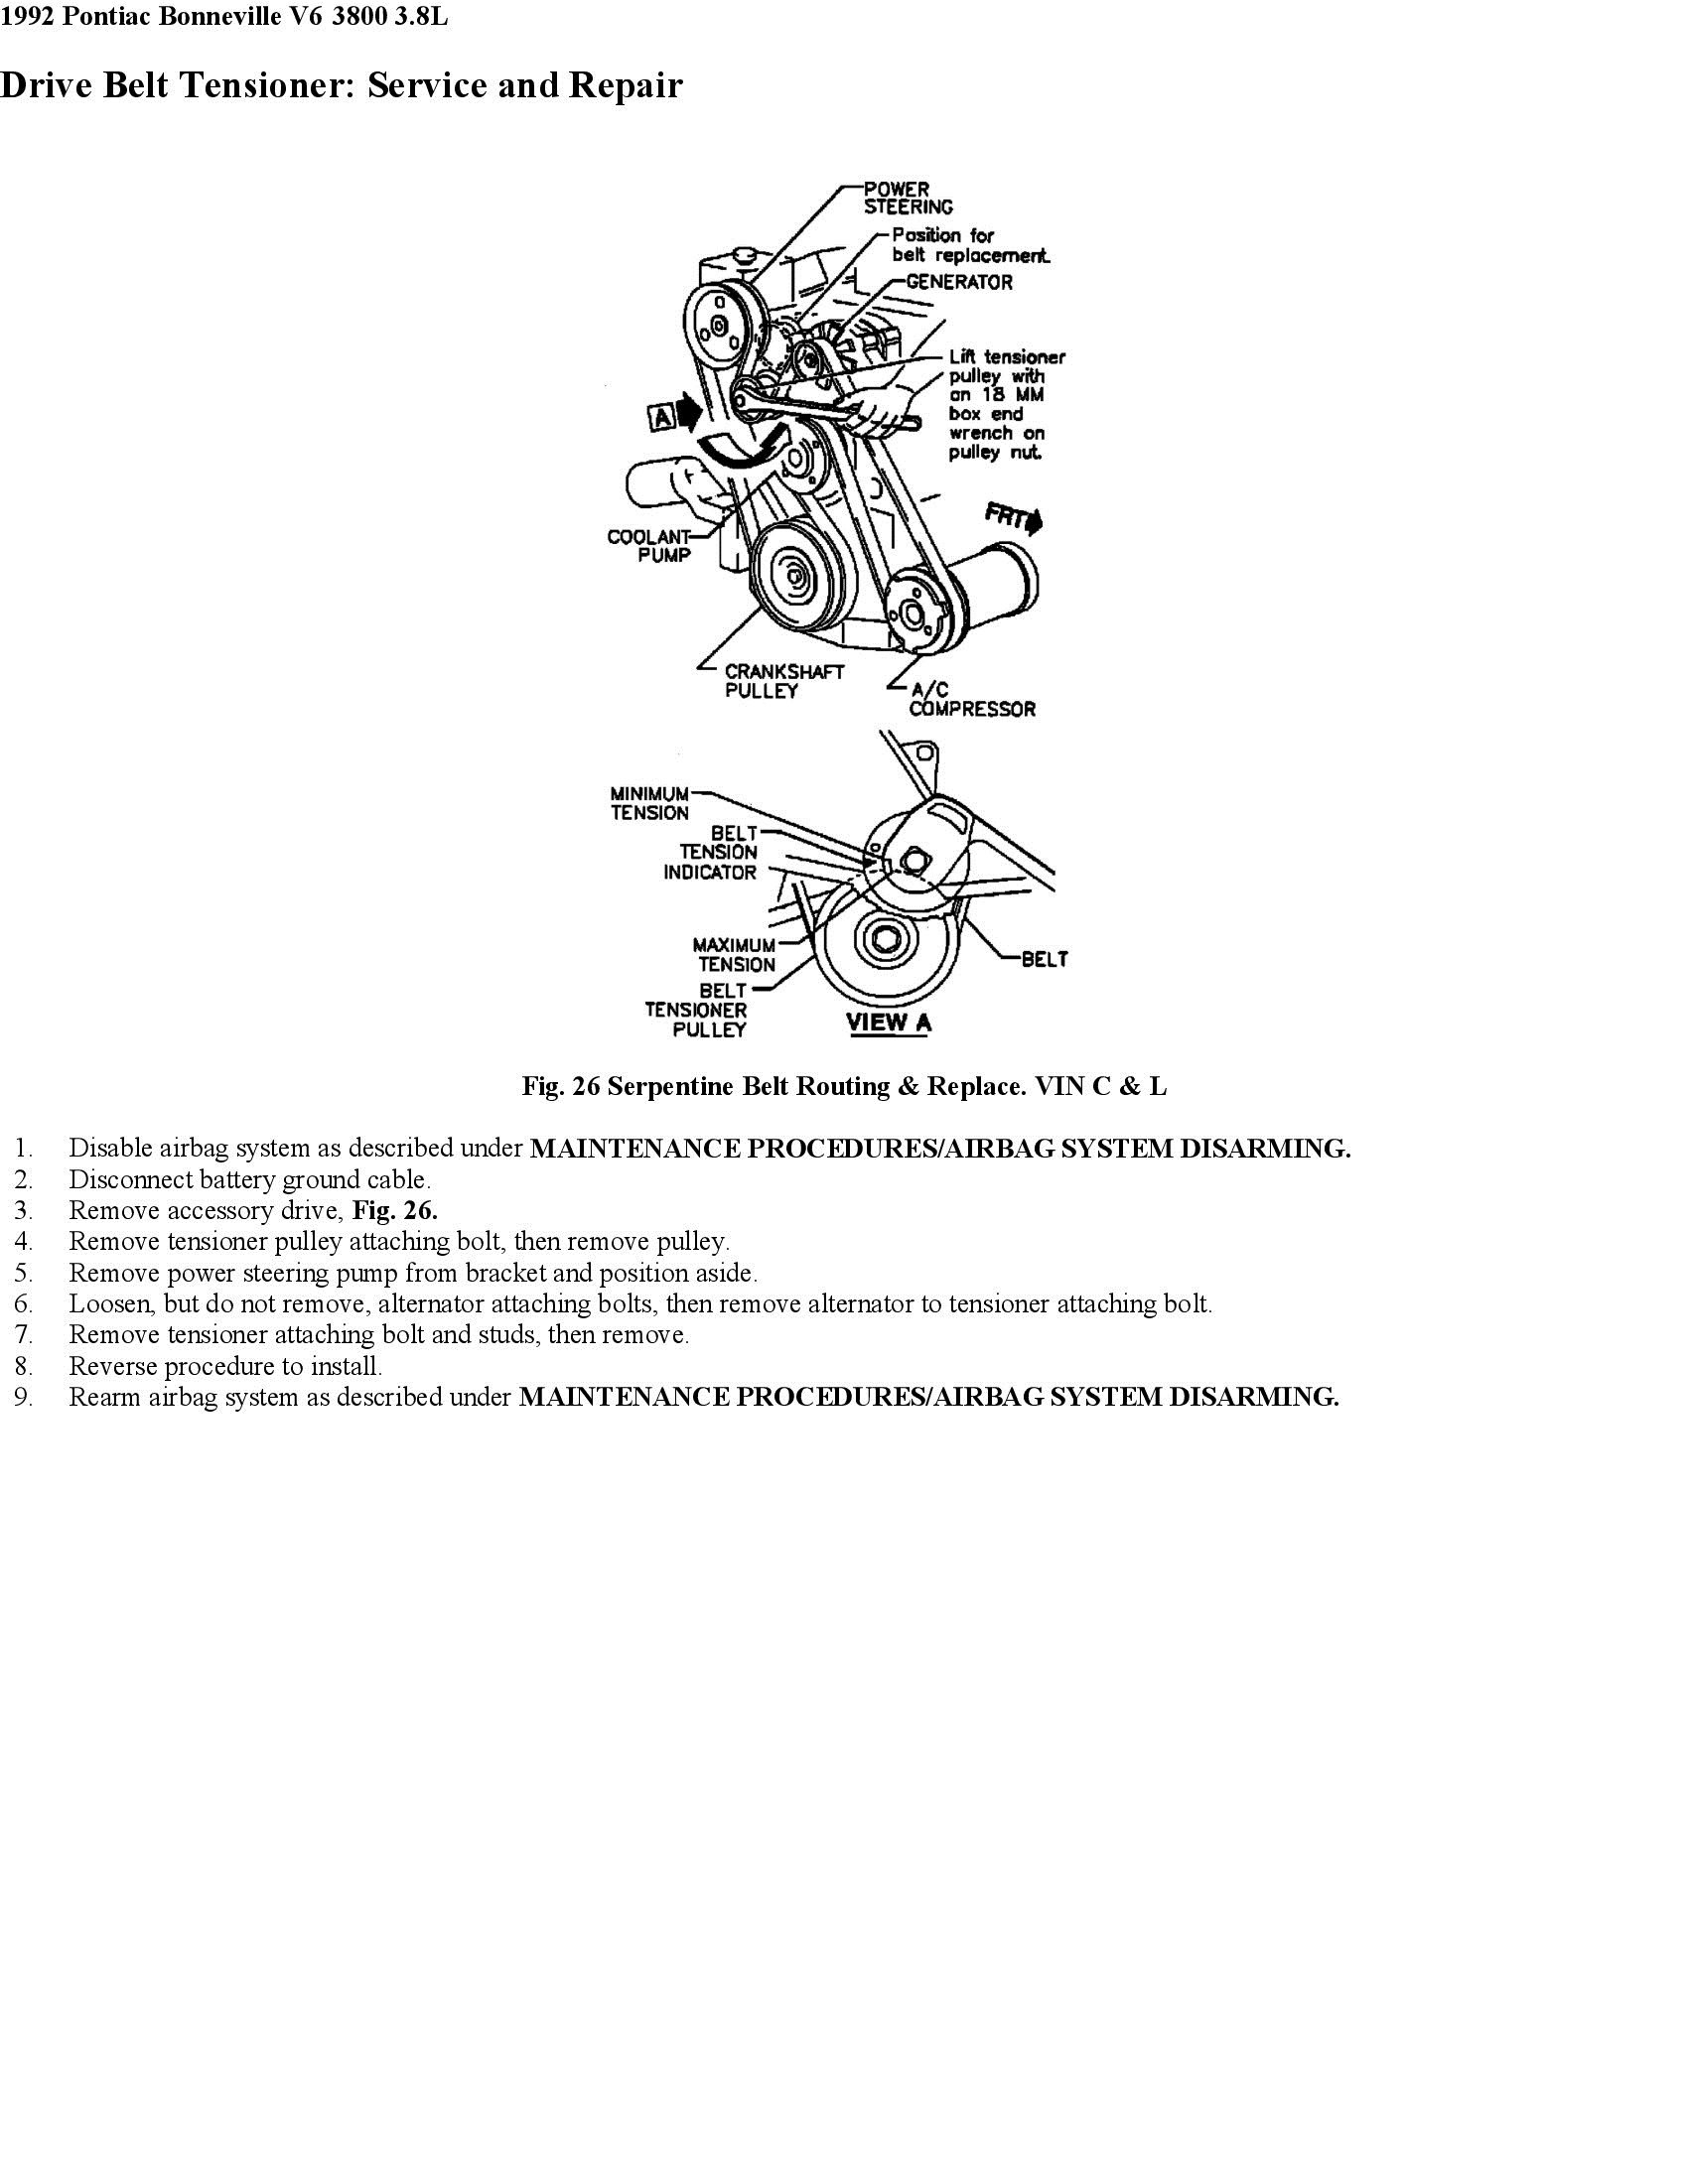 1995 Olds 98 Installation Diagram For A Serpentine Beltsupercharged